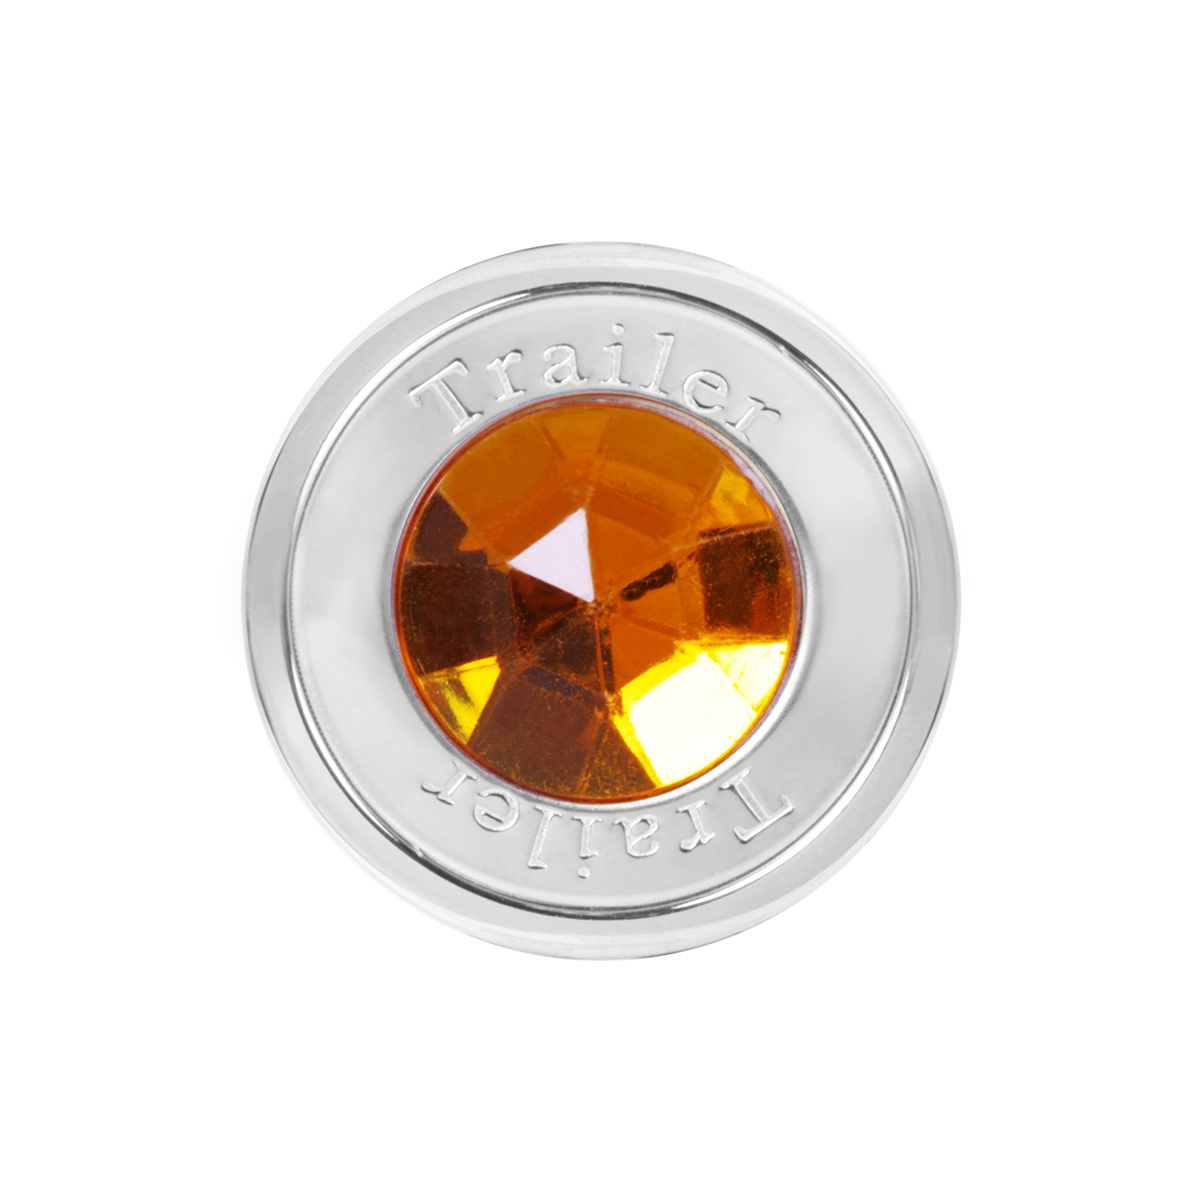 95820 Trailer Air Control Knob w/ Amber Crystal